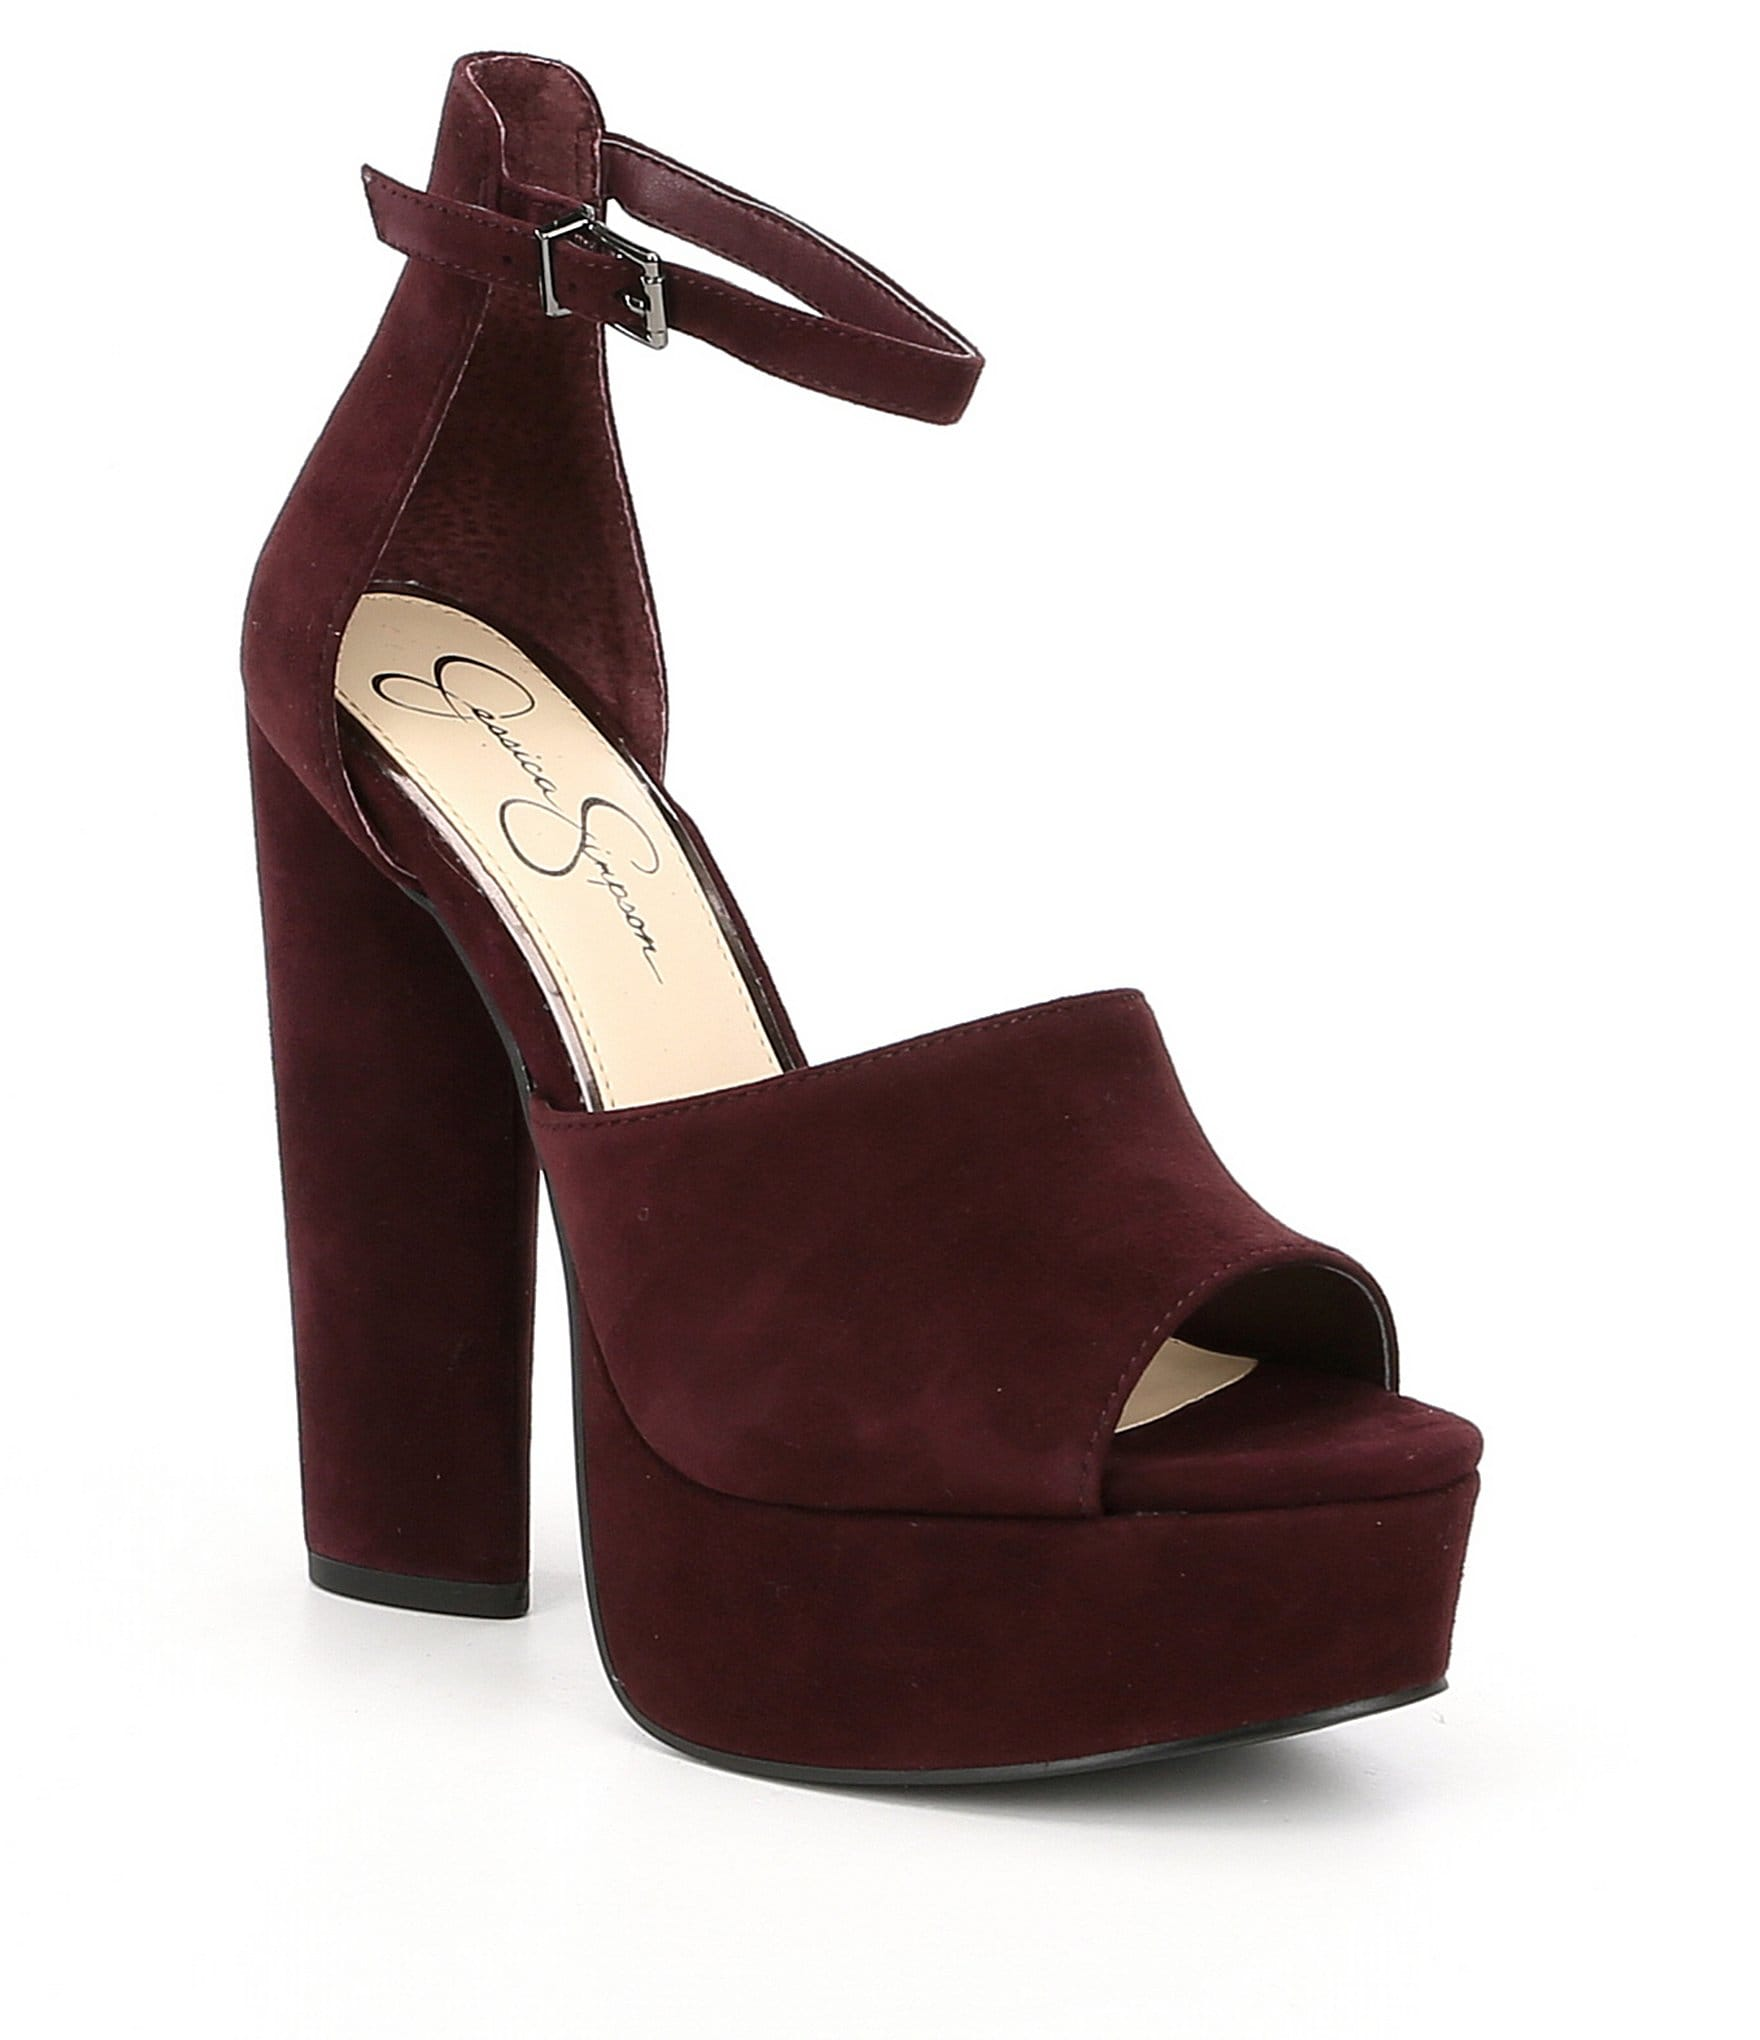 Jessica Simpson Shoes Review